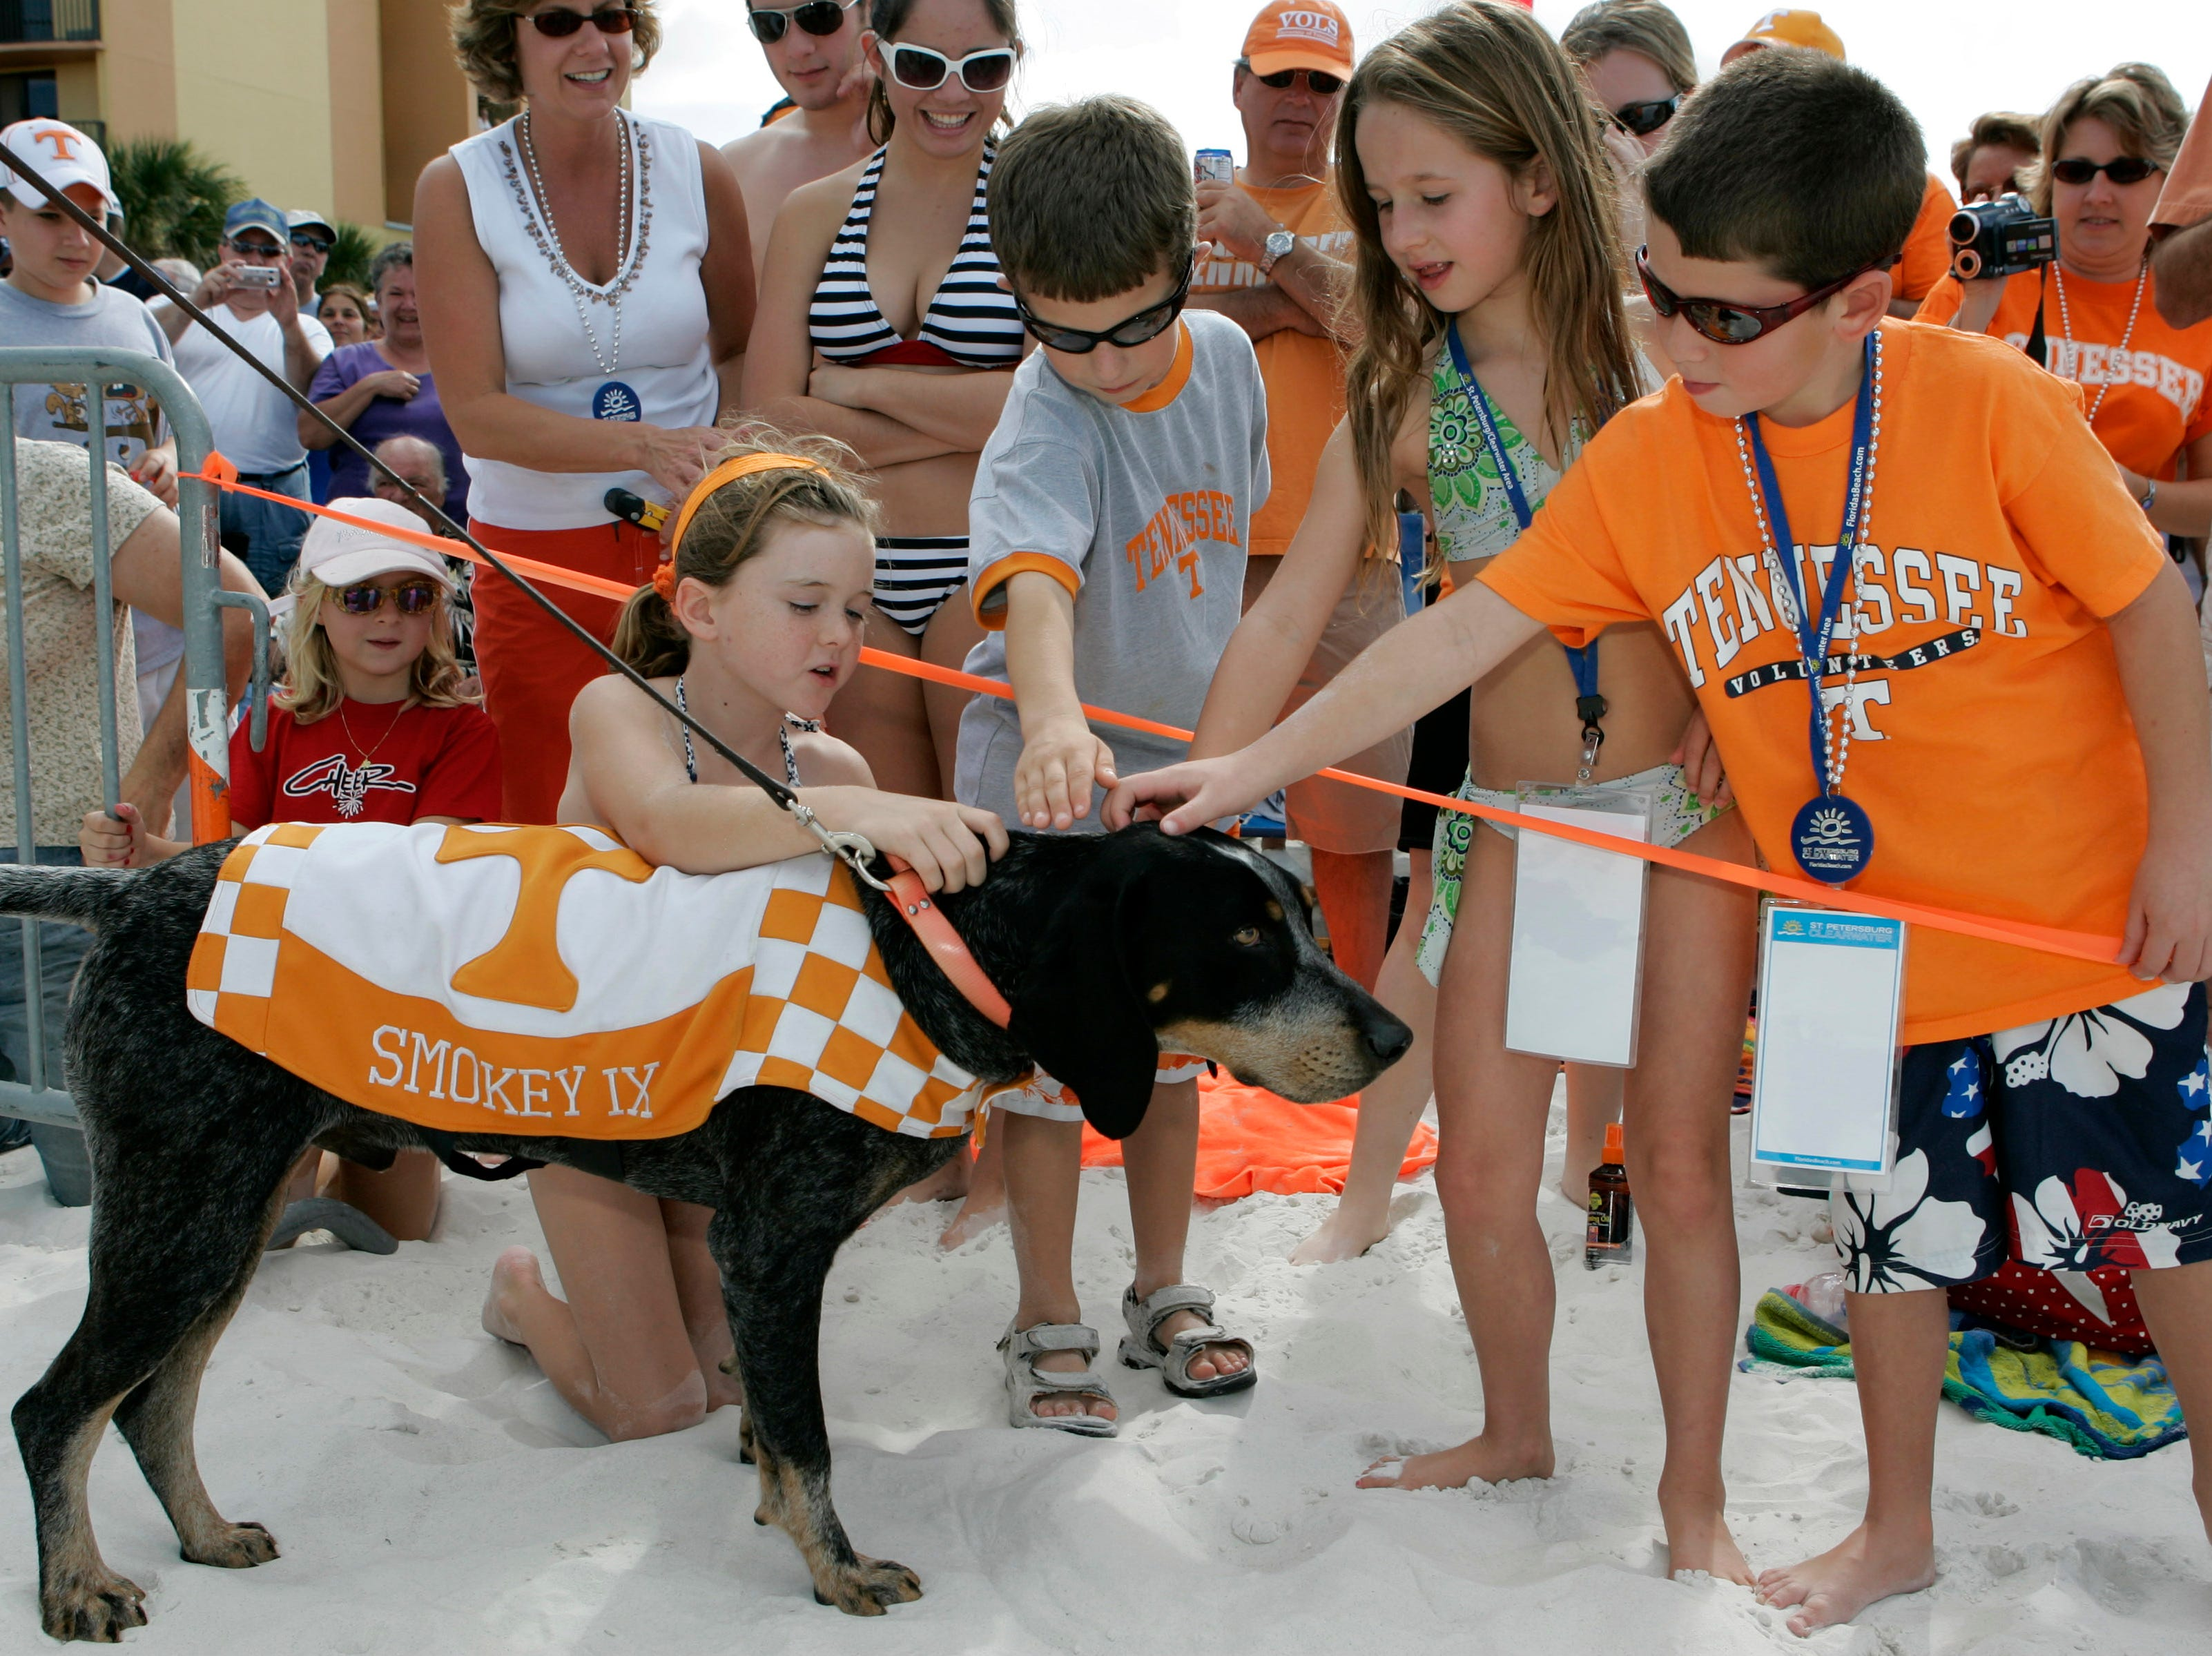 Tennessee fans, left to right, Karlie Herdson, Luke Weaver, Hannah Emery and Reece Emery pet Smokey IX, the team's mascot, during the Outback Bowl Beach Day on Saturday, Dec. 30, 2006, in Clearwater, Fla. Tennessee takes on Penn State in the Outback Bowl college football game on New Year's Day.